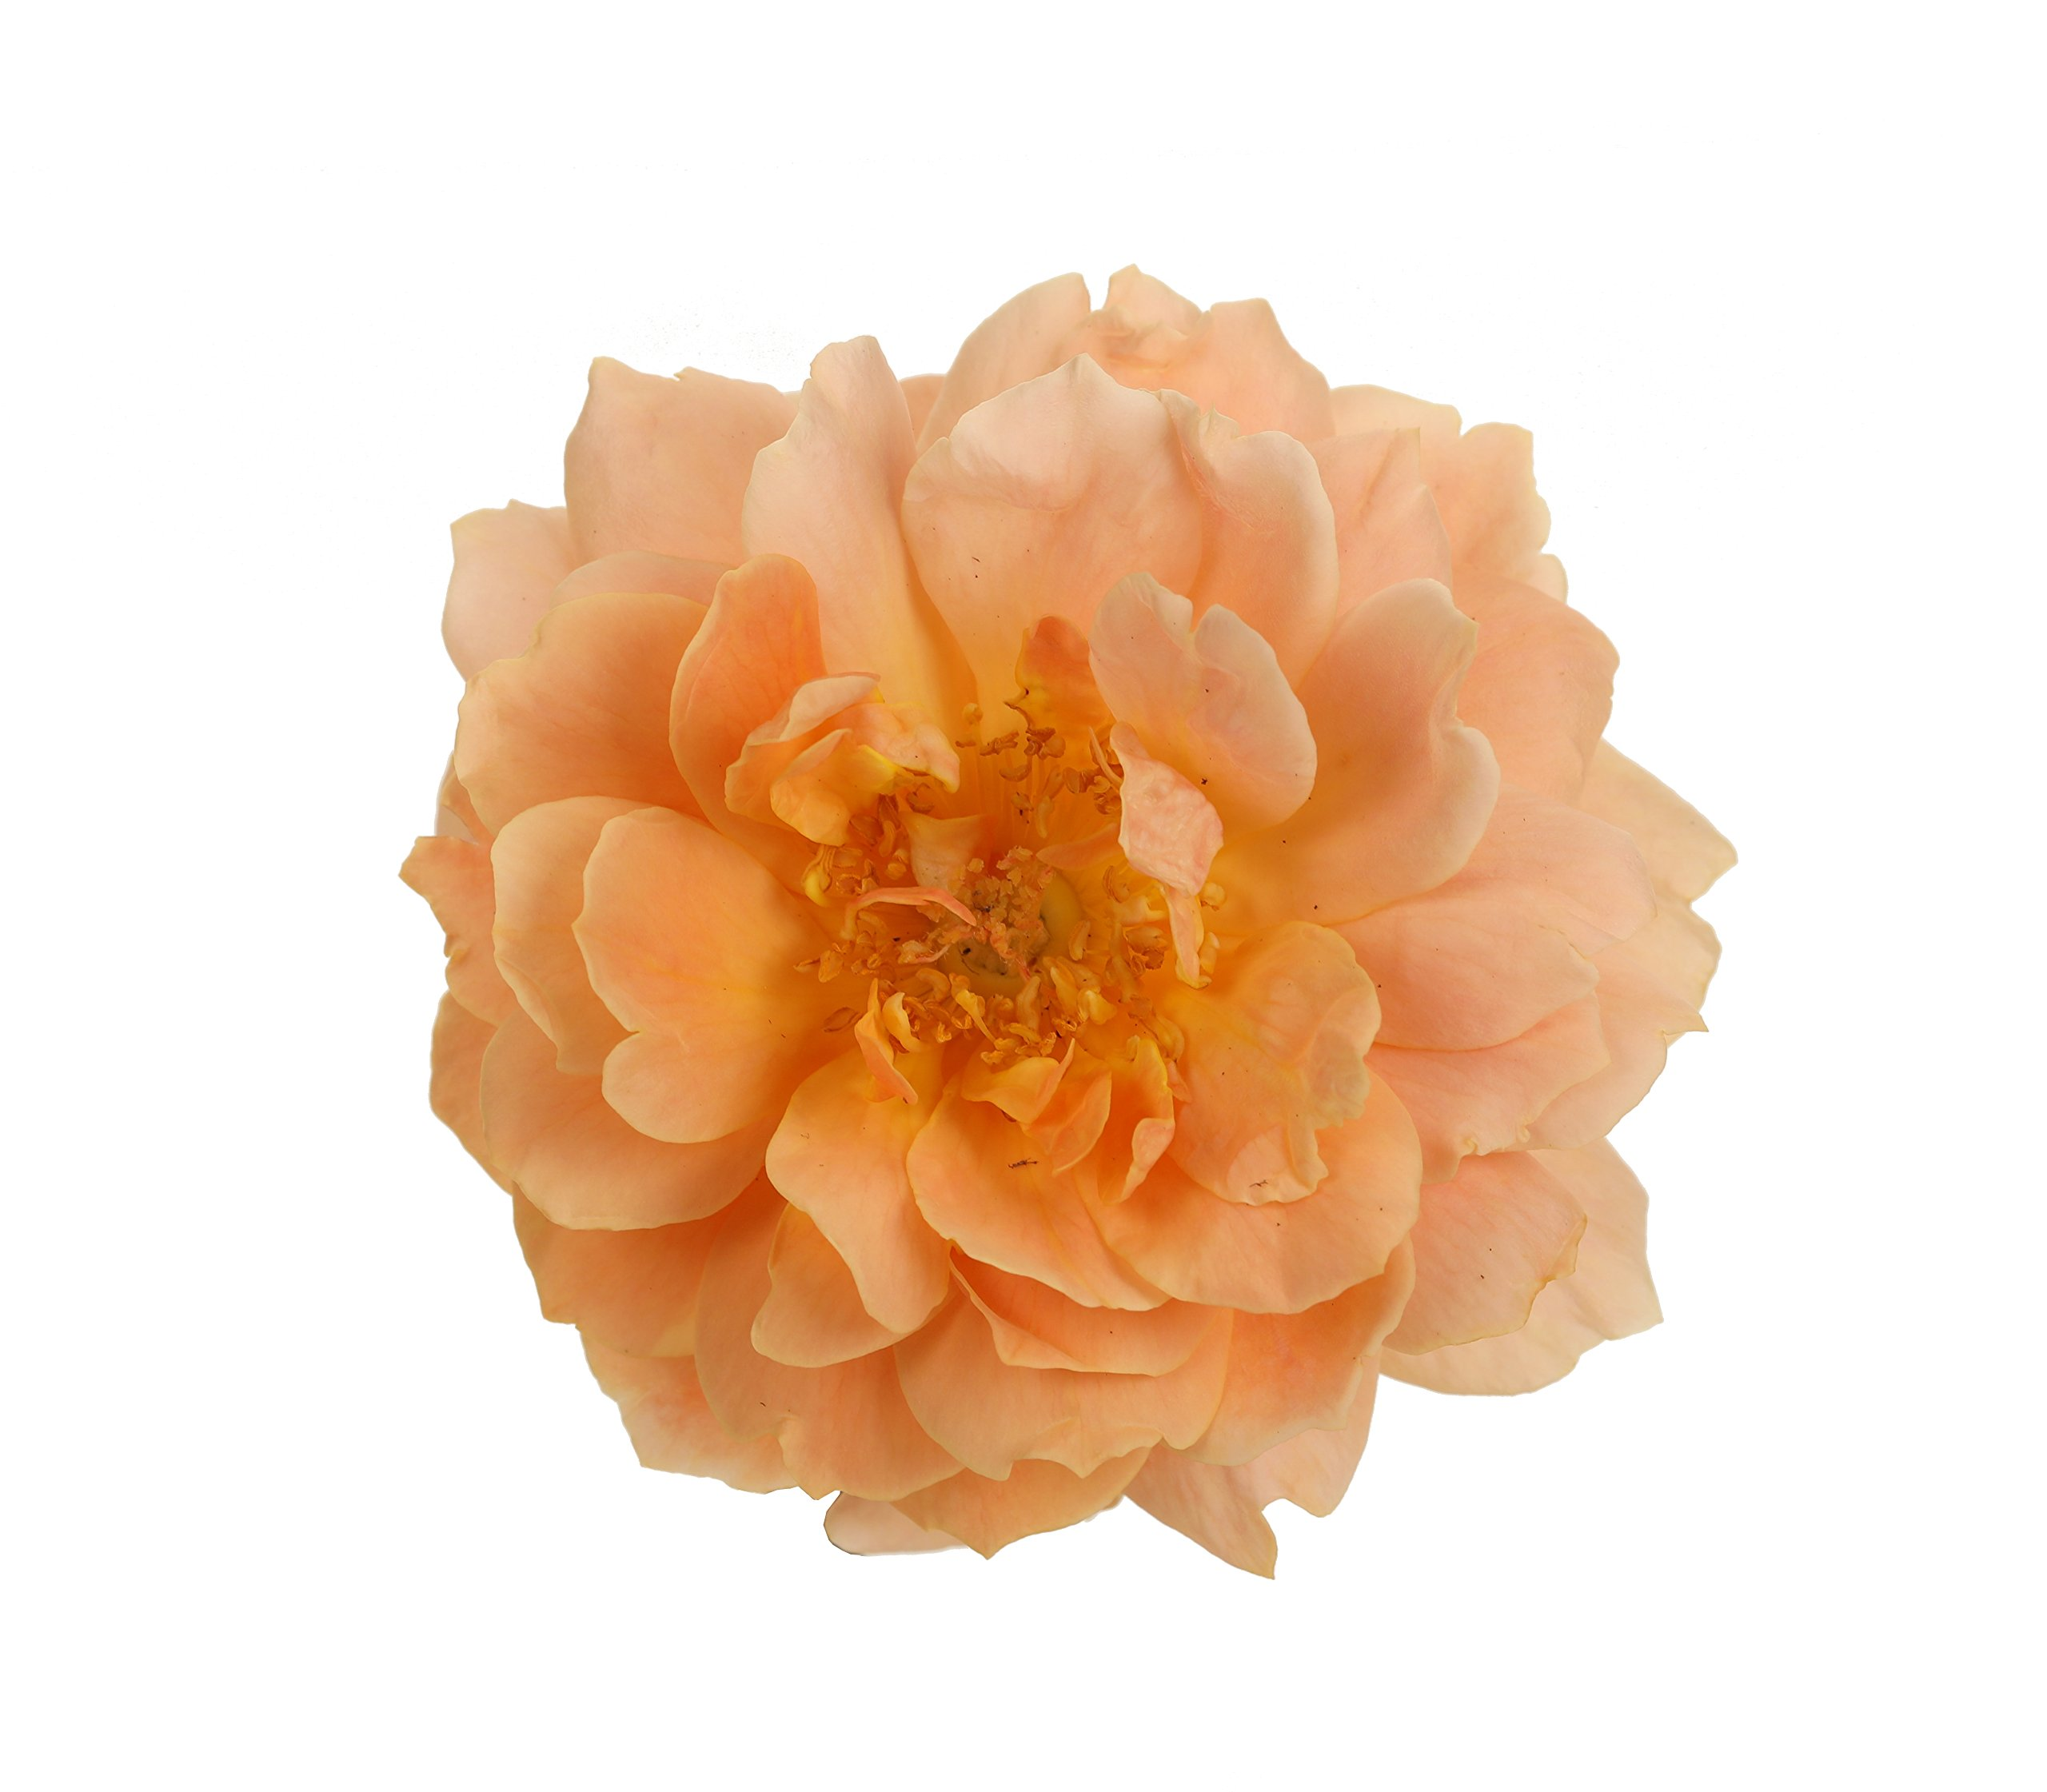 At Last Rose (Rosa) Live Shrub, Orange Flowers, 4.5 in. Quart by Proven Winners (Image #4)